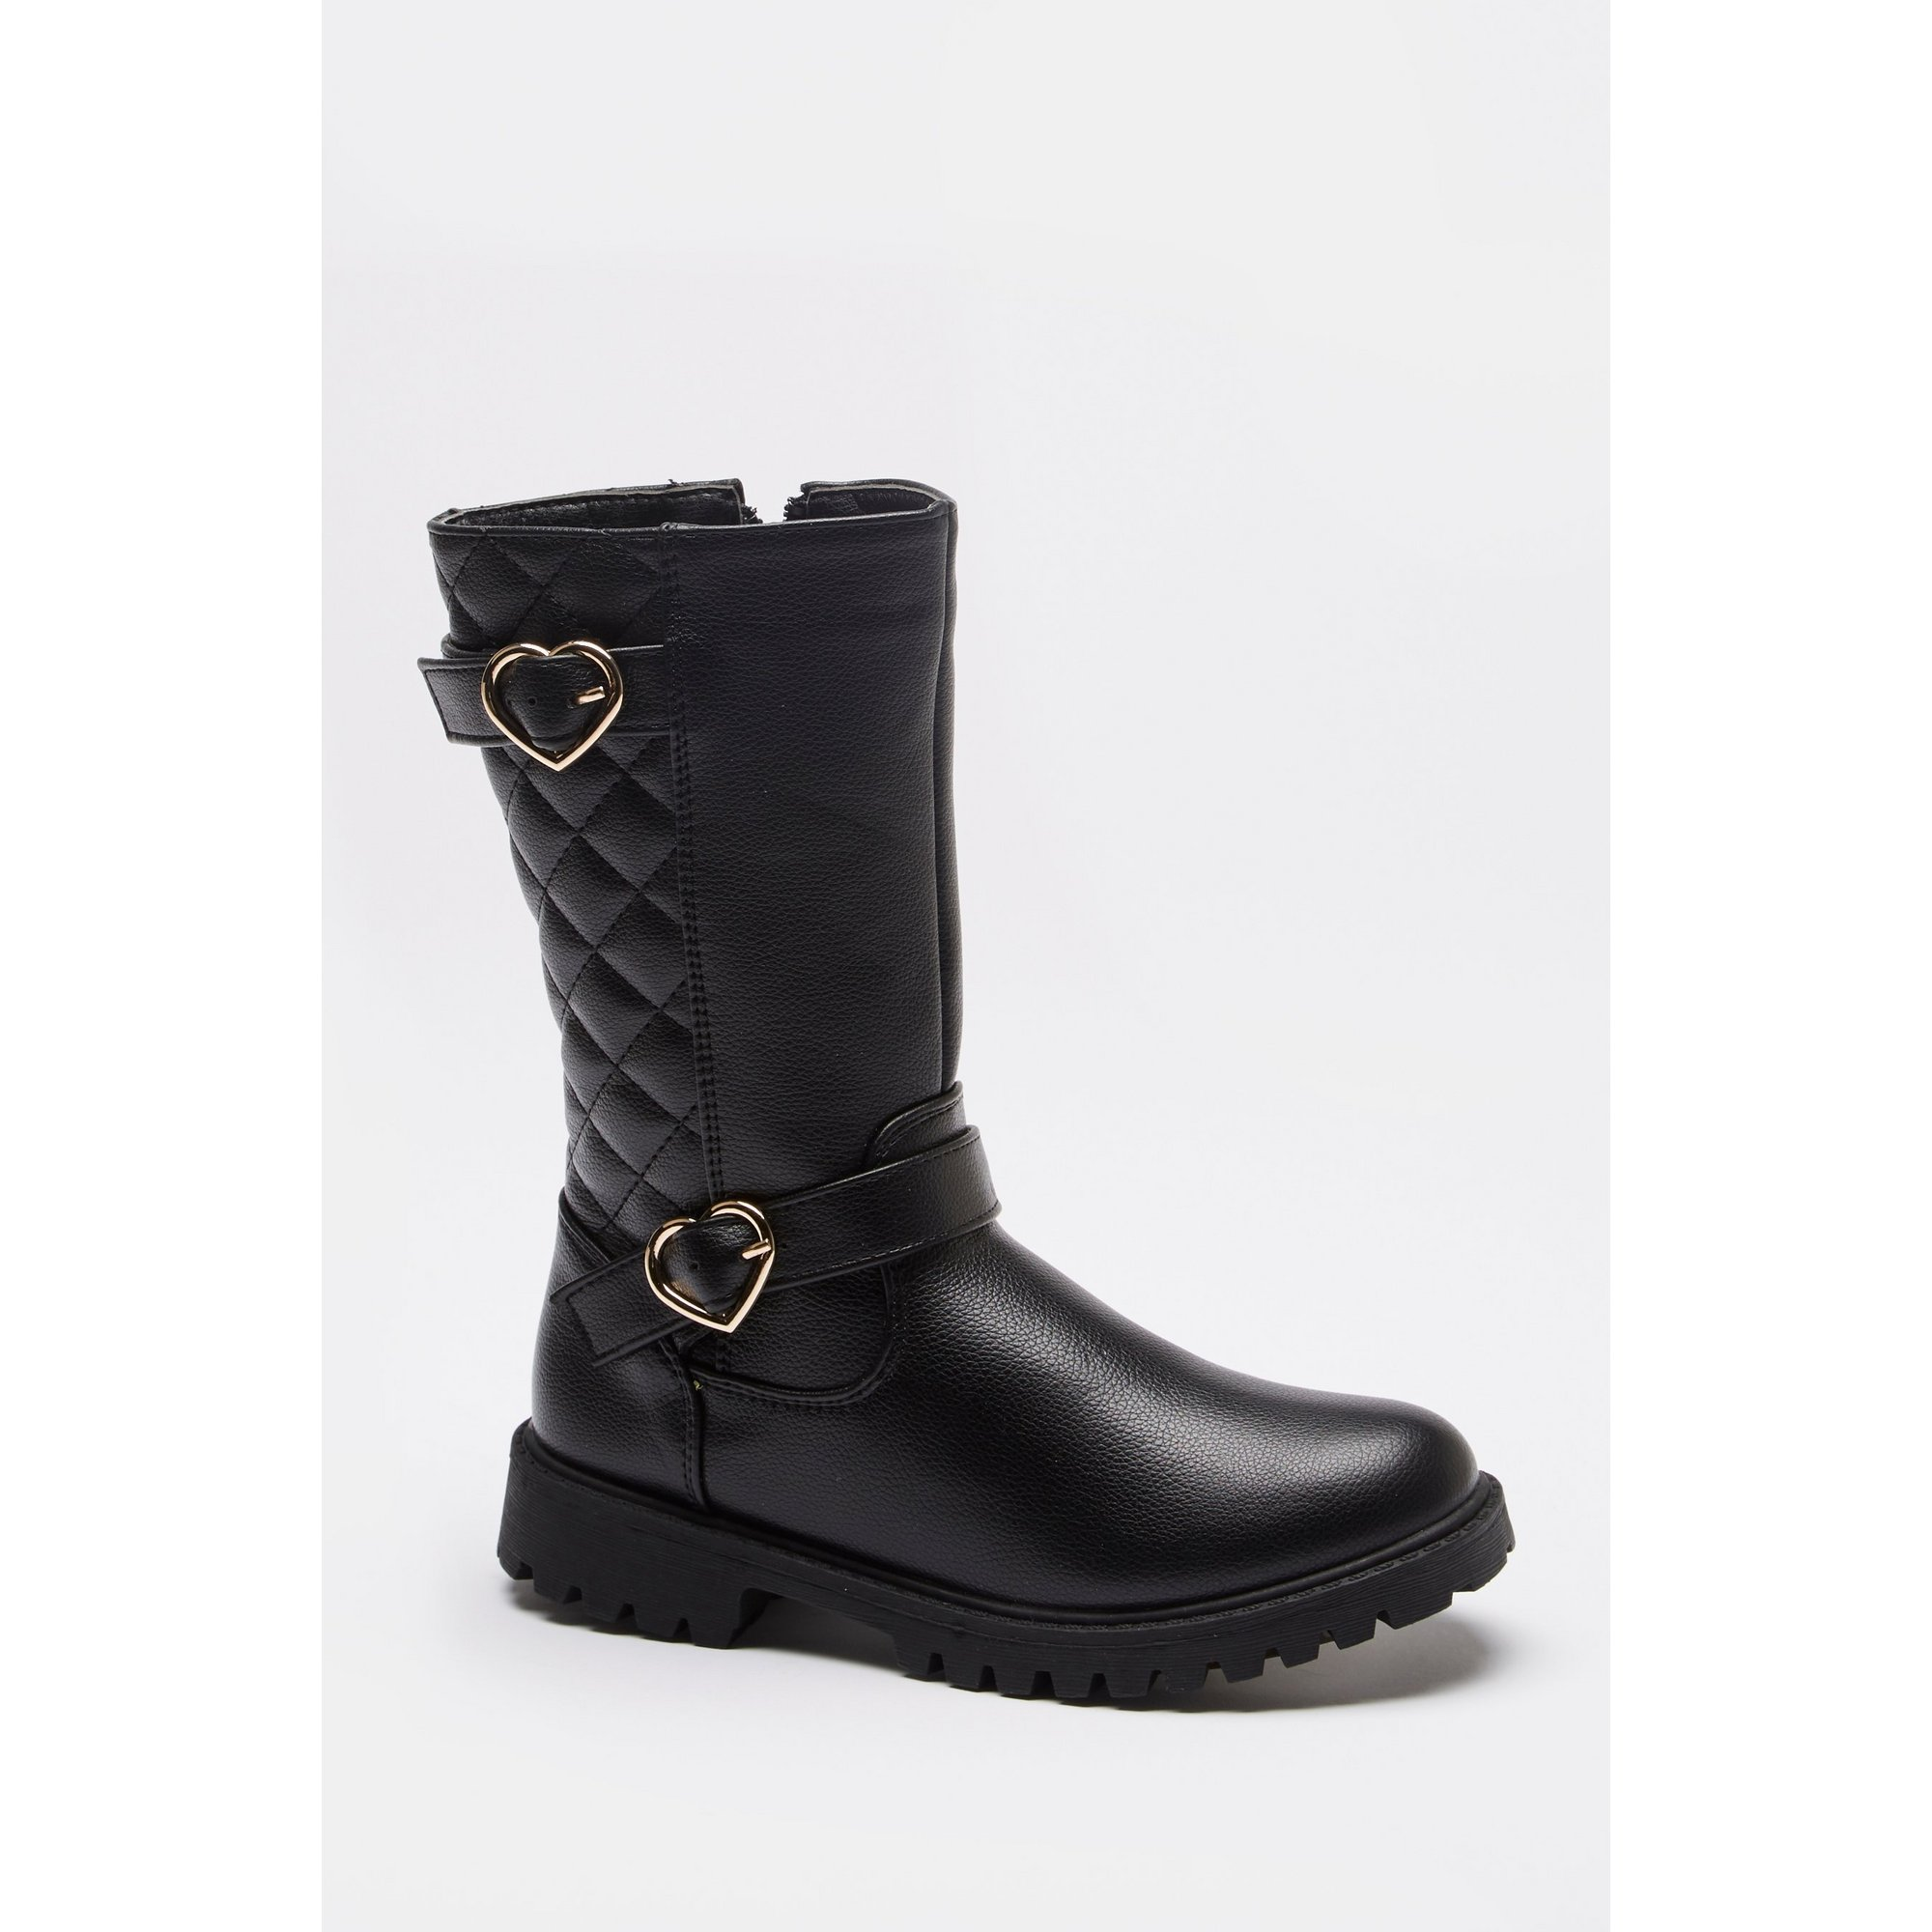 Image of Girls Quilted Buckle Boots